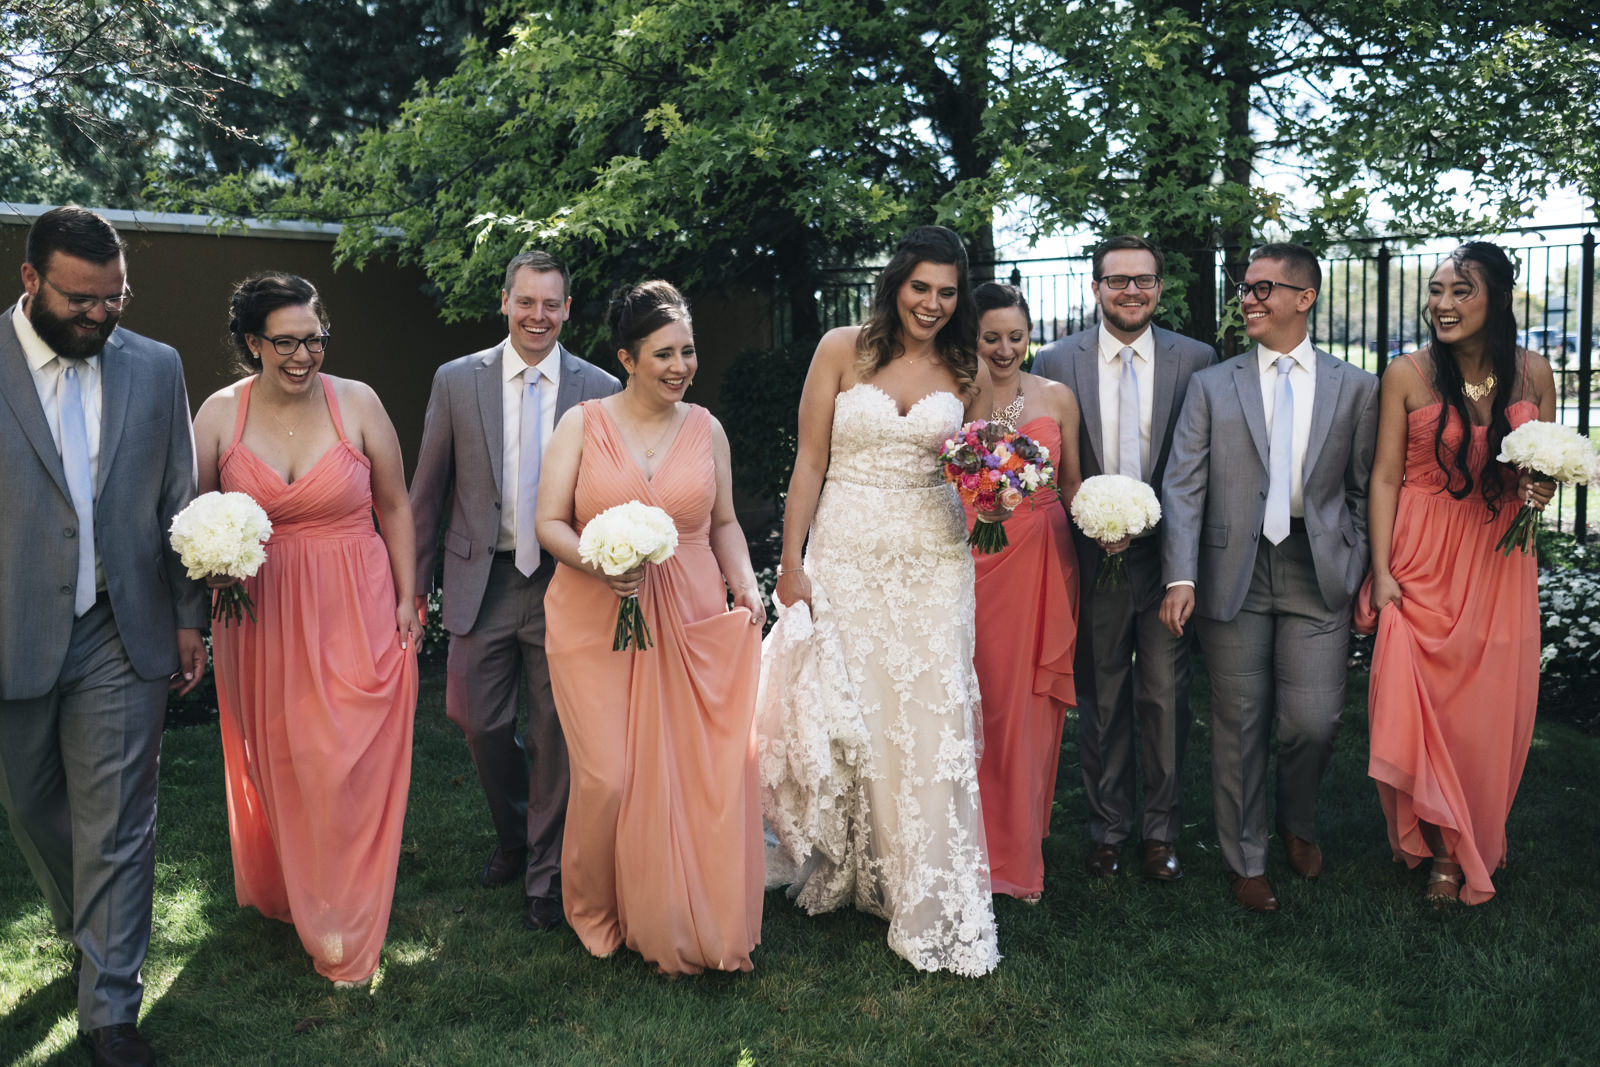 The bride walks with her bridal party through the garden at Maumee Marriott hotel in Ohio.